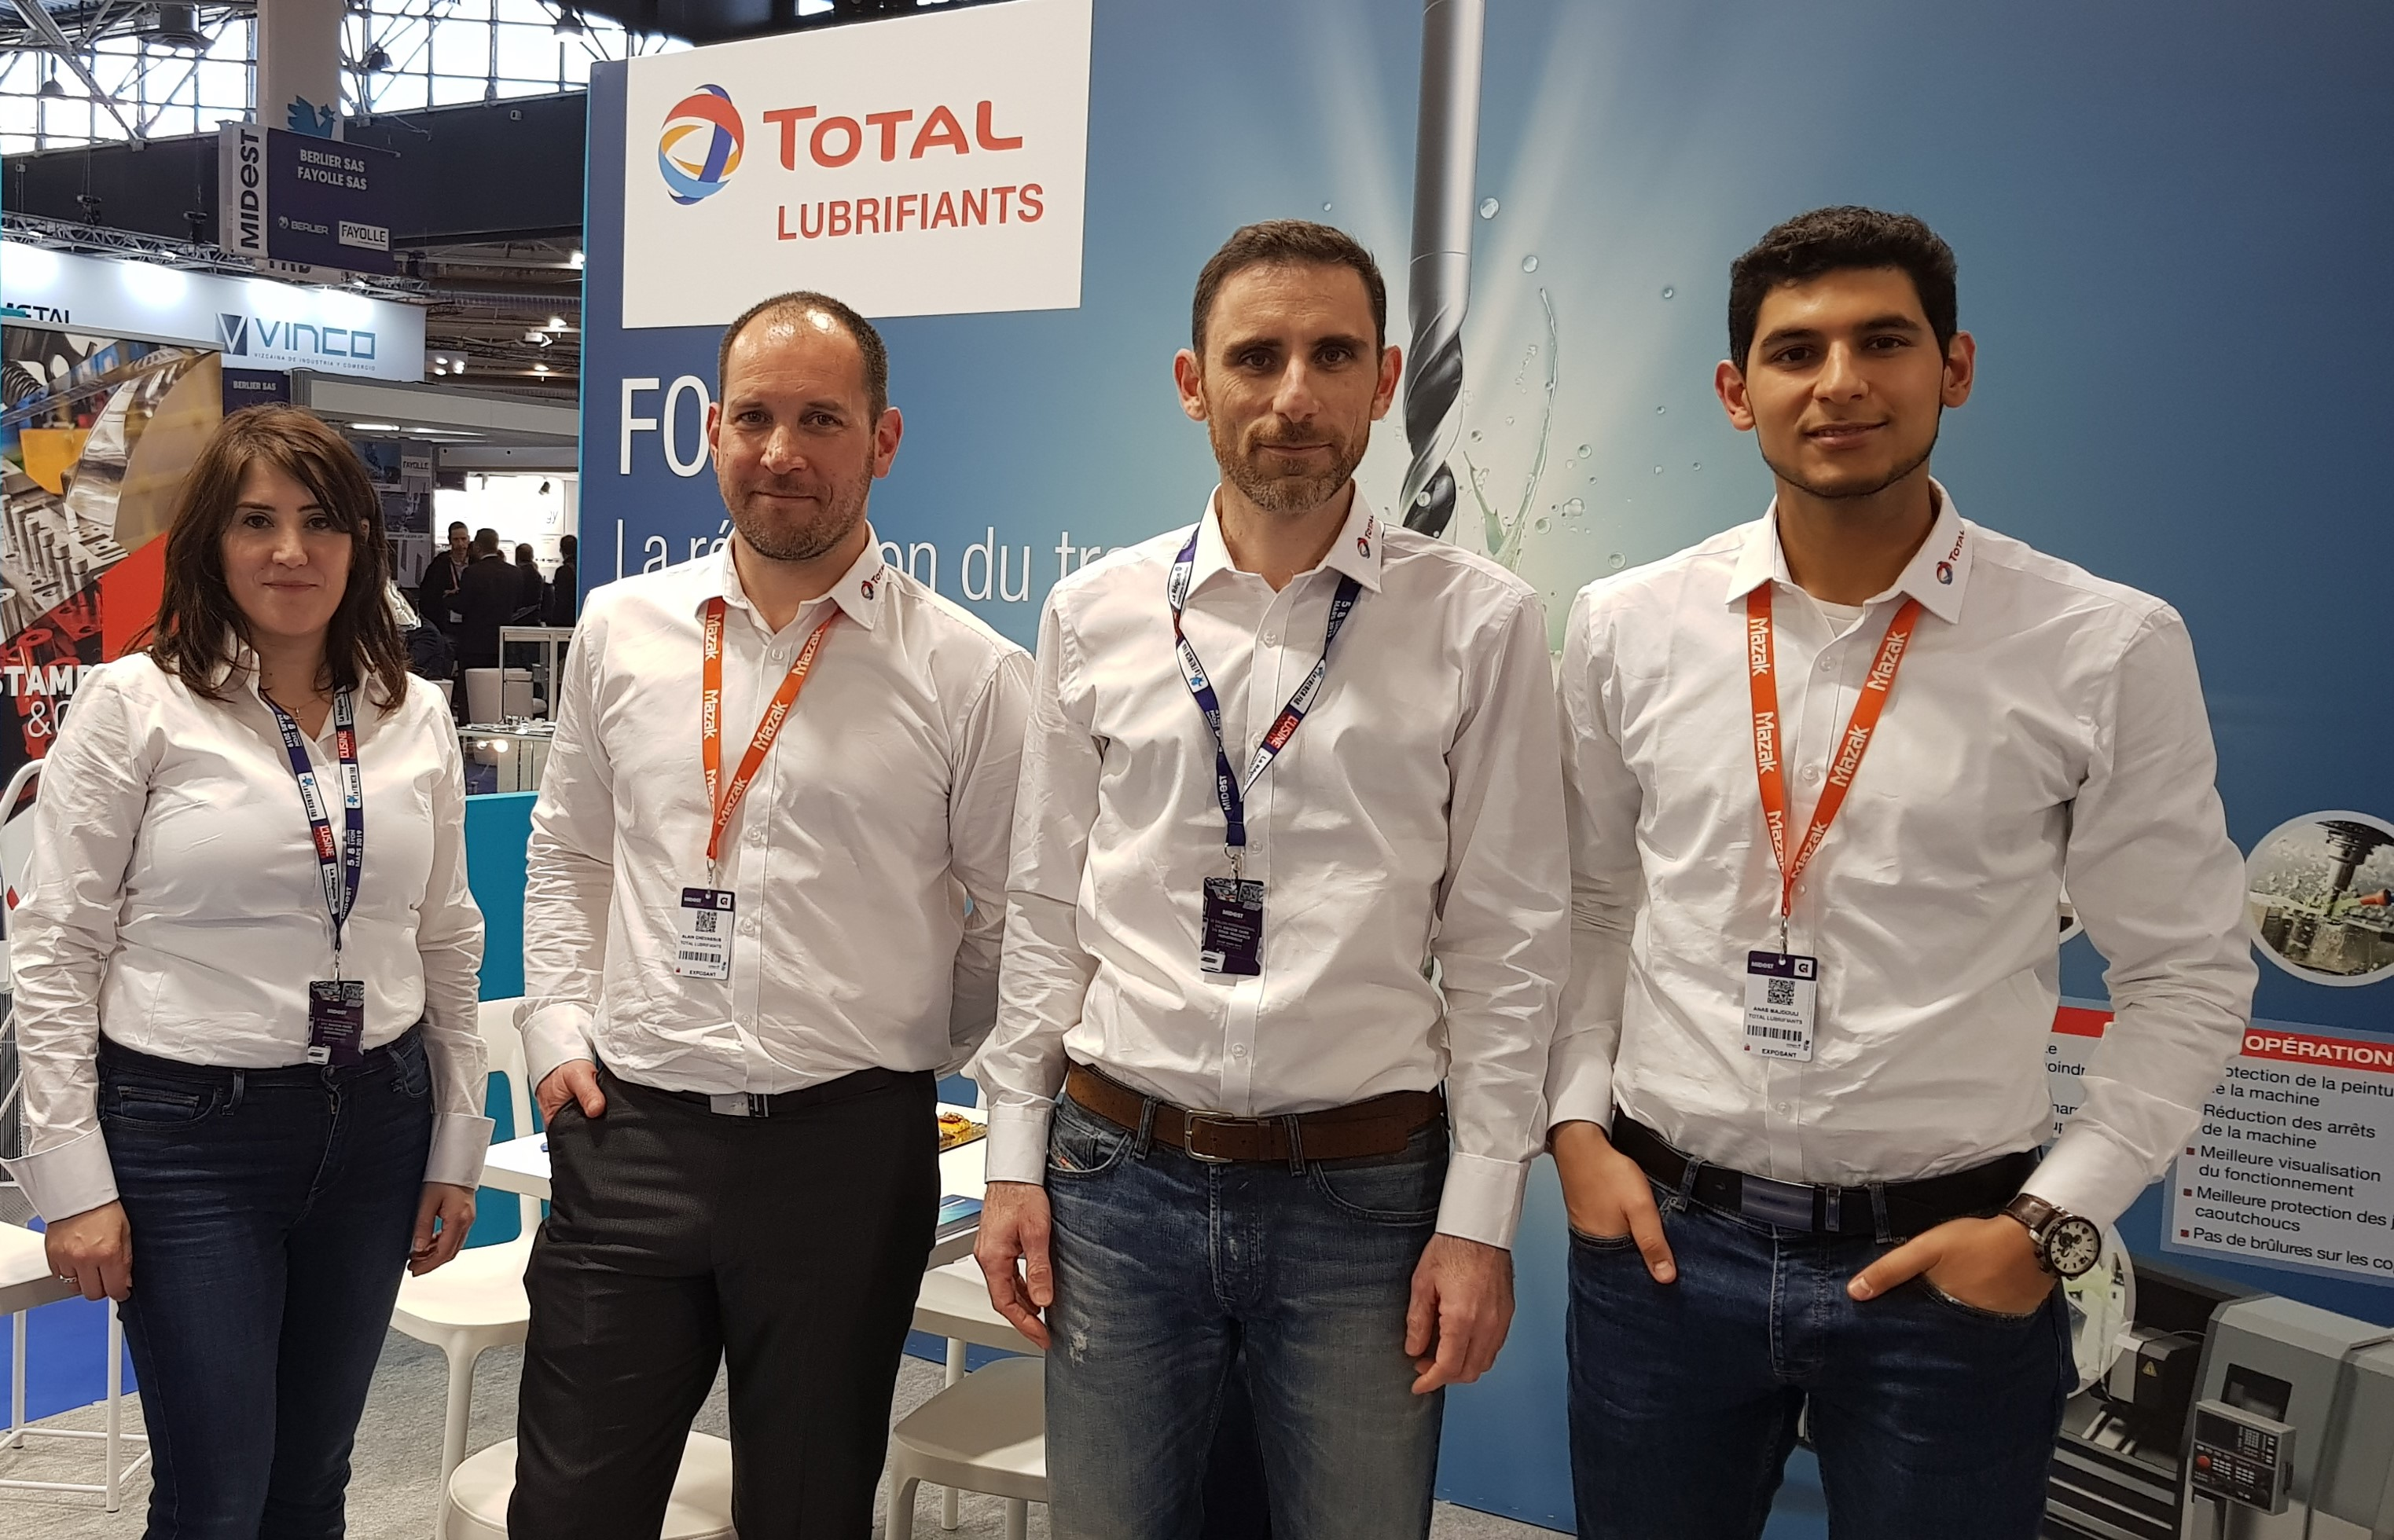 Total Lubrifiants was at the 2019 Global Industrie exhibition